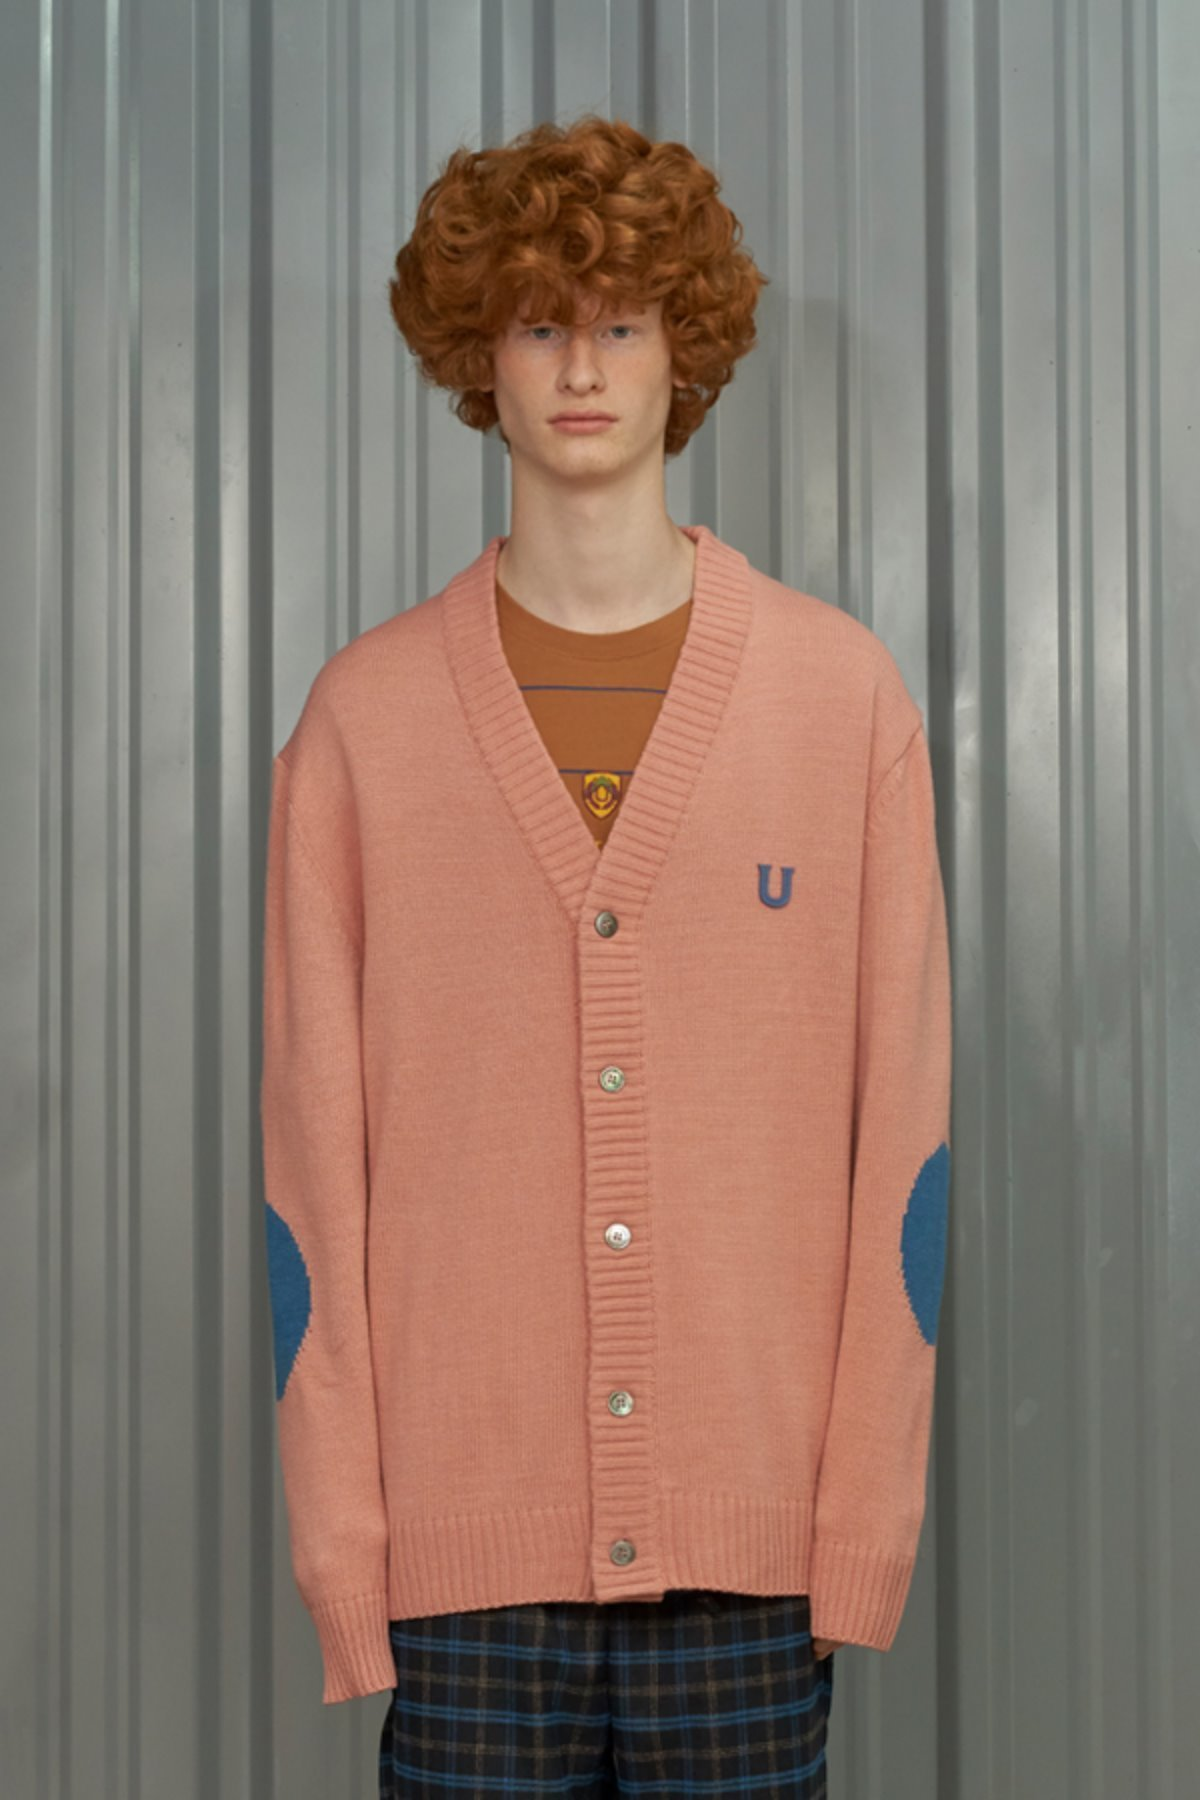 U PATCH CARDIGAN / PINK